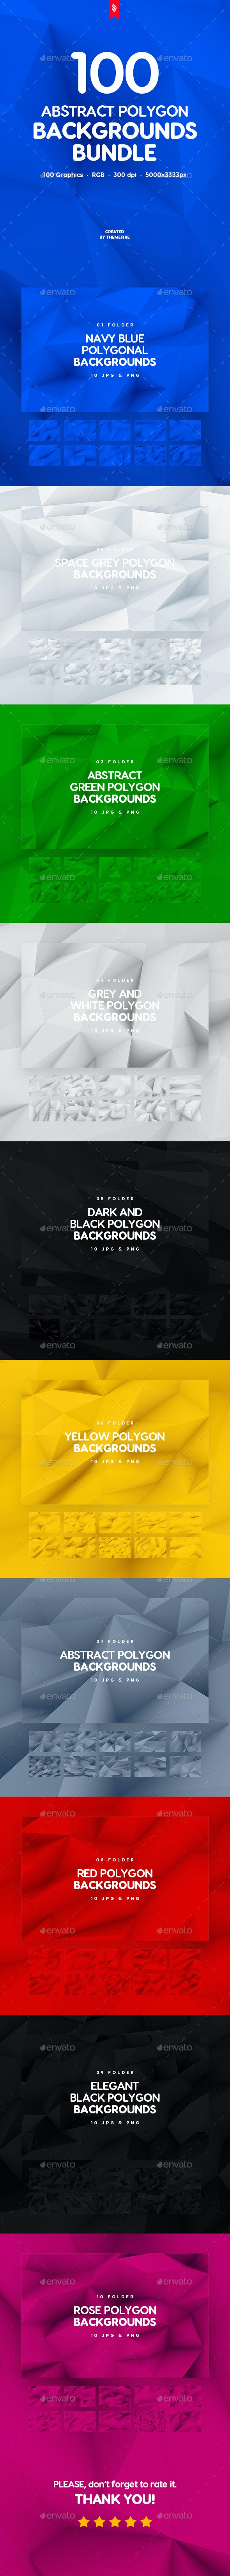 100 Different Abstract 3D Polygon Backgrounds Bundle - Abstract Backgrounds